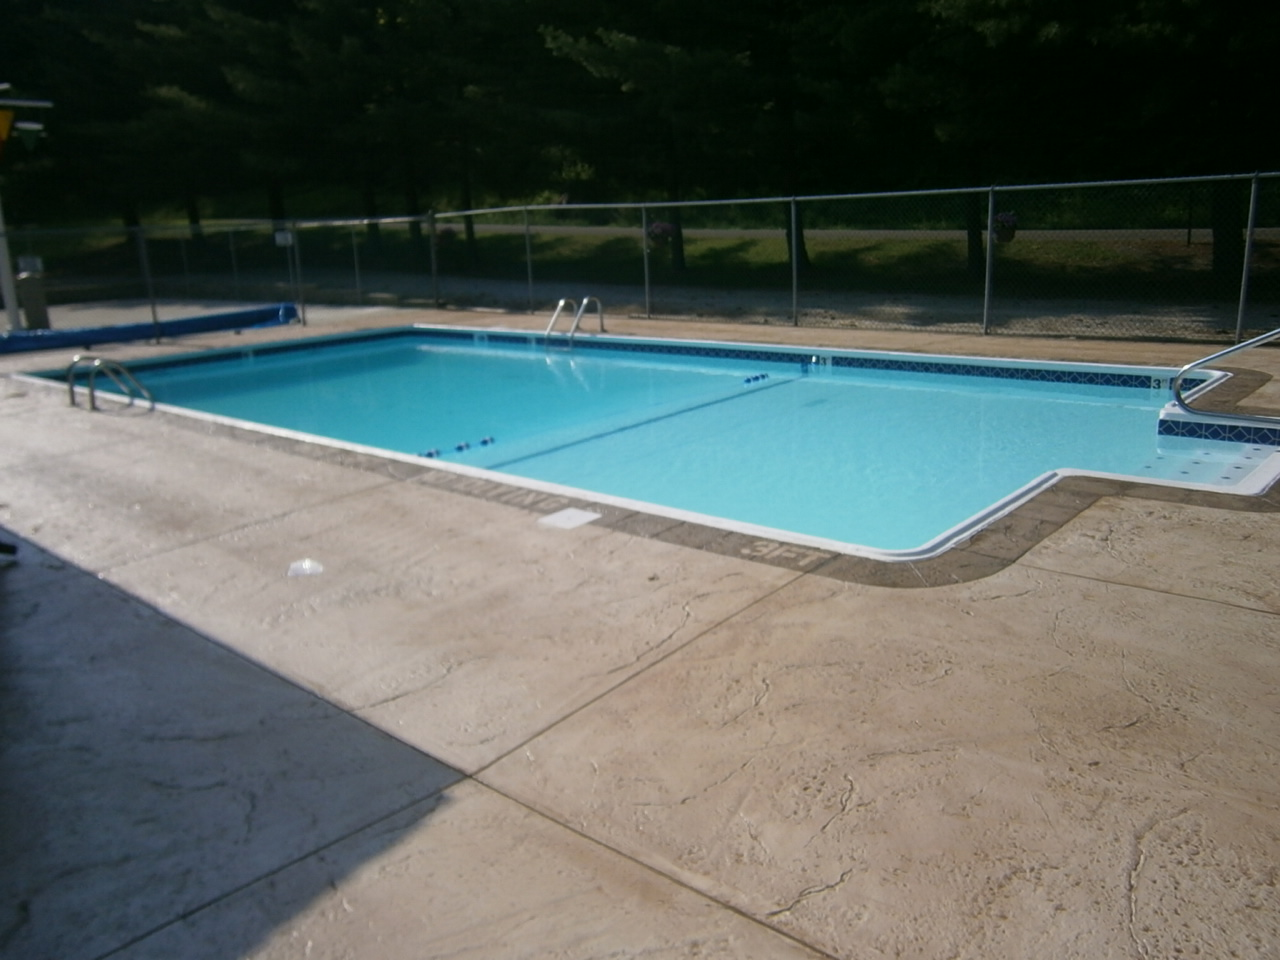 Concrete Pool Decks Photo Gallery Pool Decks Gallery  Redeck Of Central Ohio  Decorative Concrete